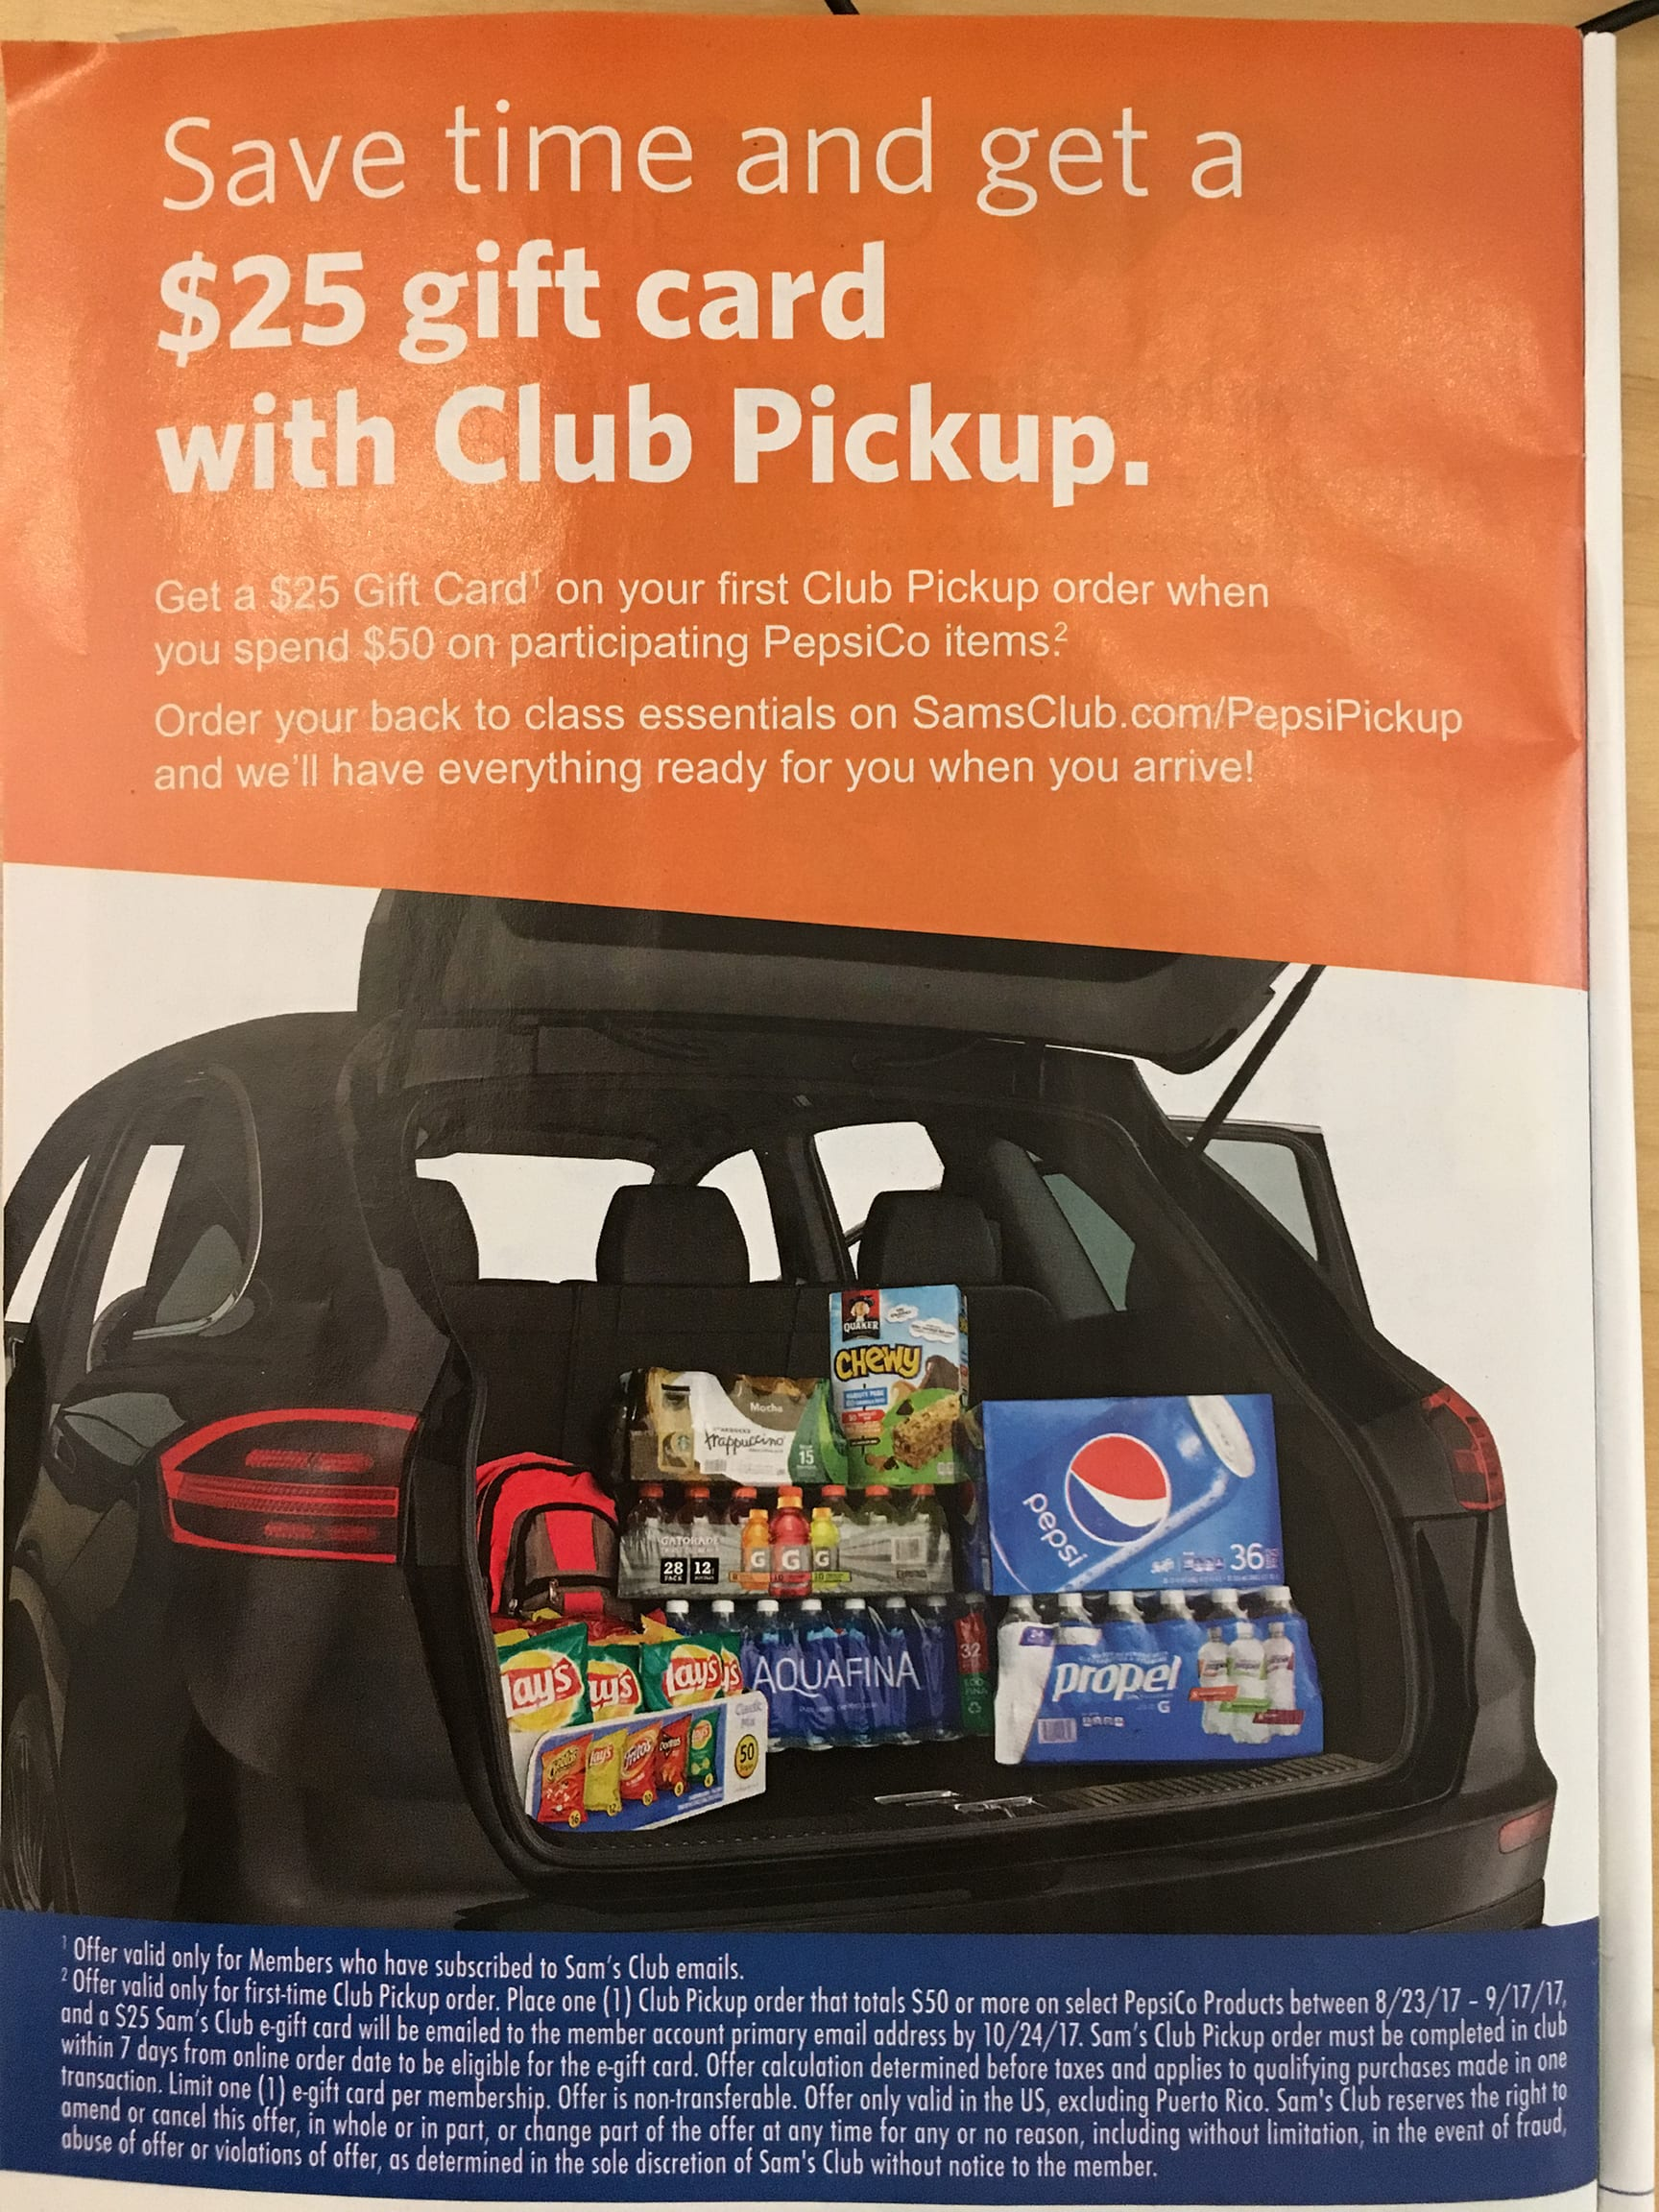 Sam's Club - PepsiCo Club Pickup Gift Card Offer, spend $50 on select products, get $25 GC, 8/23 - 9/17 (YMMV)